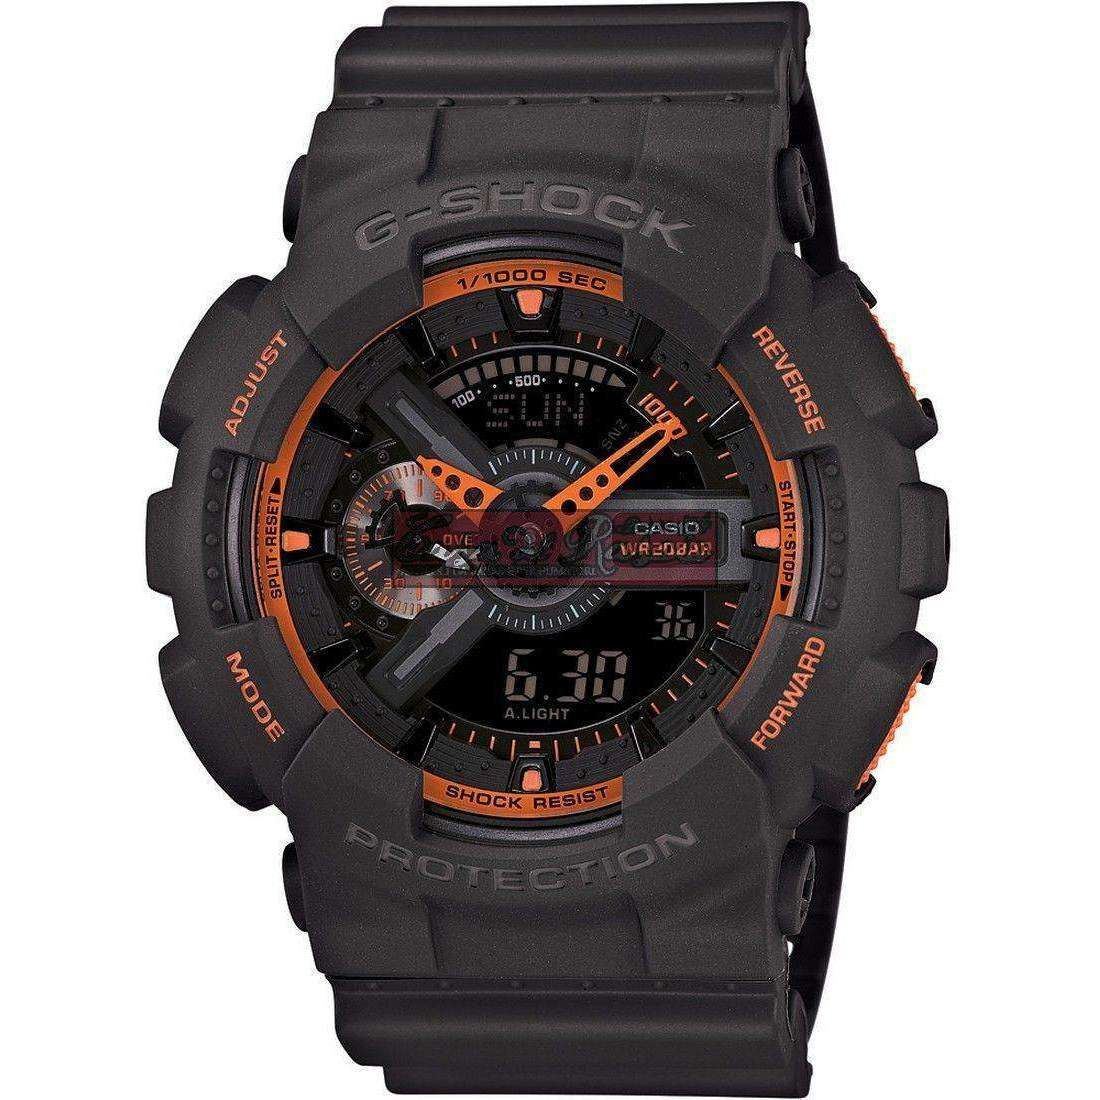 watch multifunction man Casio G-SHOCK GA-110TS-1A4ER